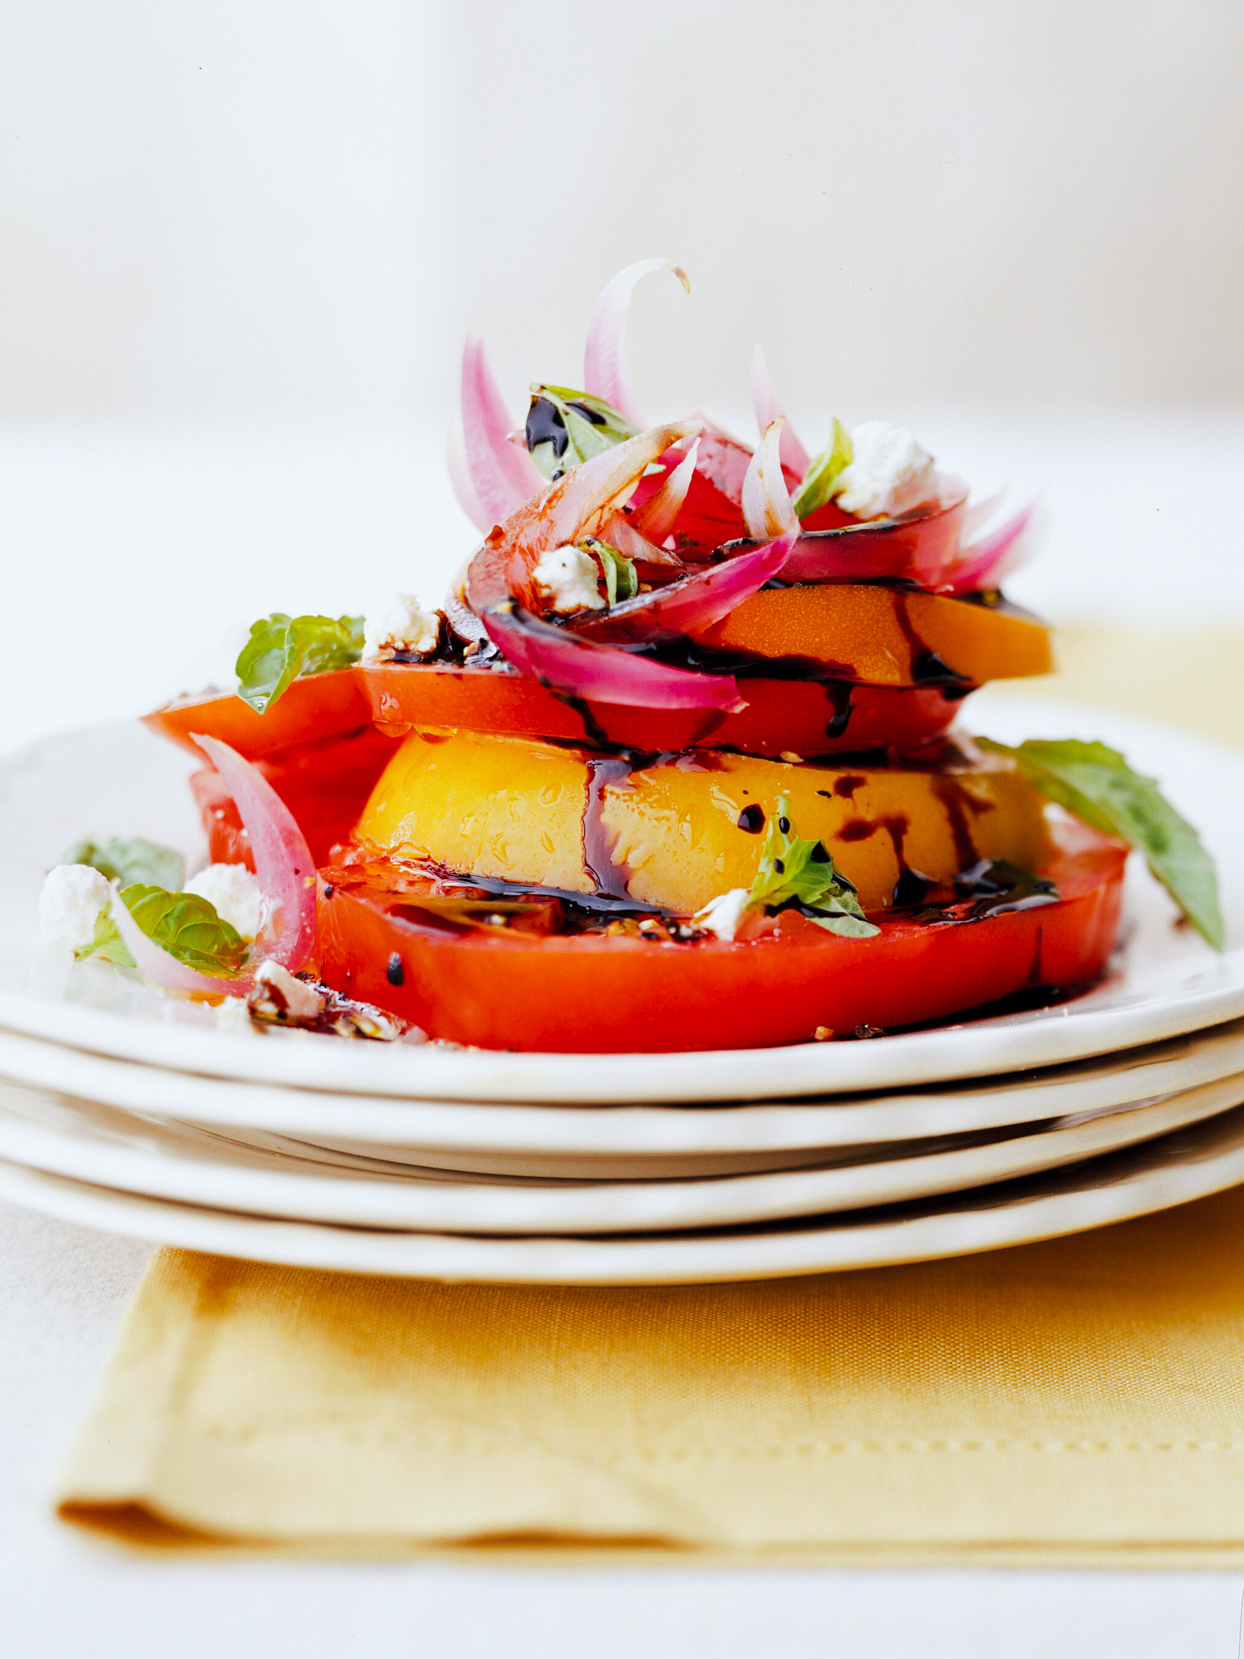 Tomato Salad with Pickled Red Onions